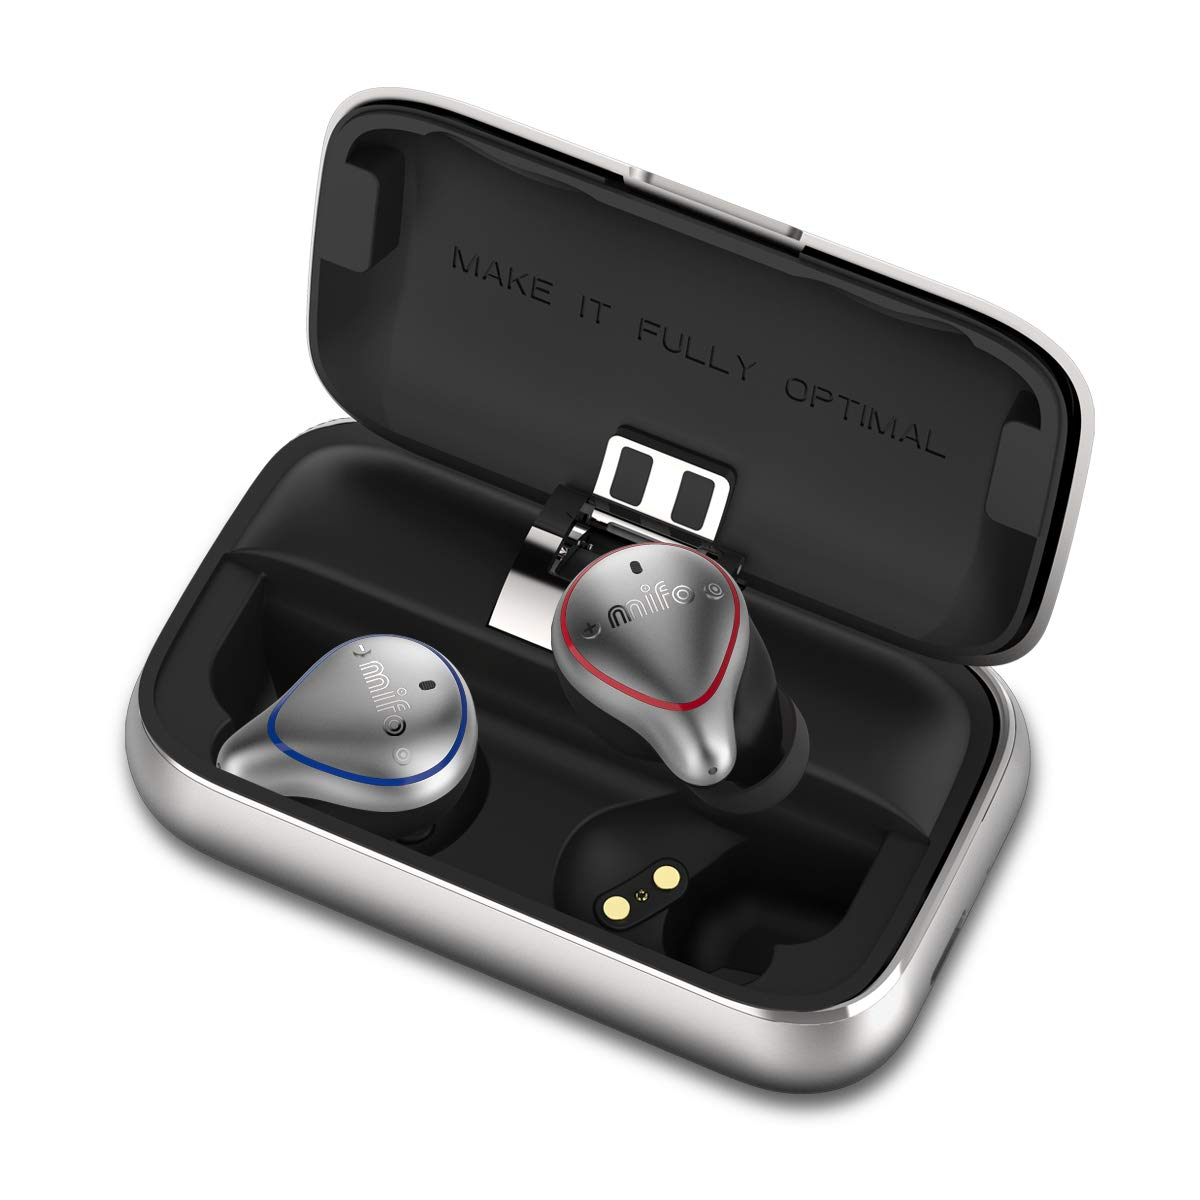 MIFO O5PLUS TWS Wireless Earbuds True Wireless APTX Stereo Earbuds Bluetooth 5.0 100h Playtime Waterproof Built in Mic Wireless Sports Earphones for Running with 2600mAH Portable Charging Case